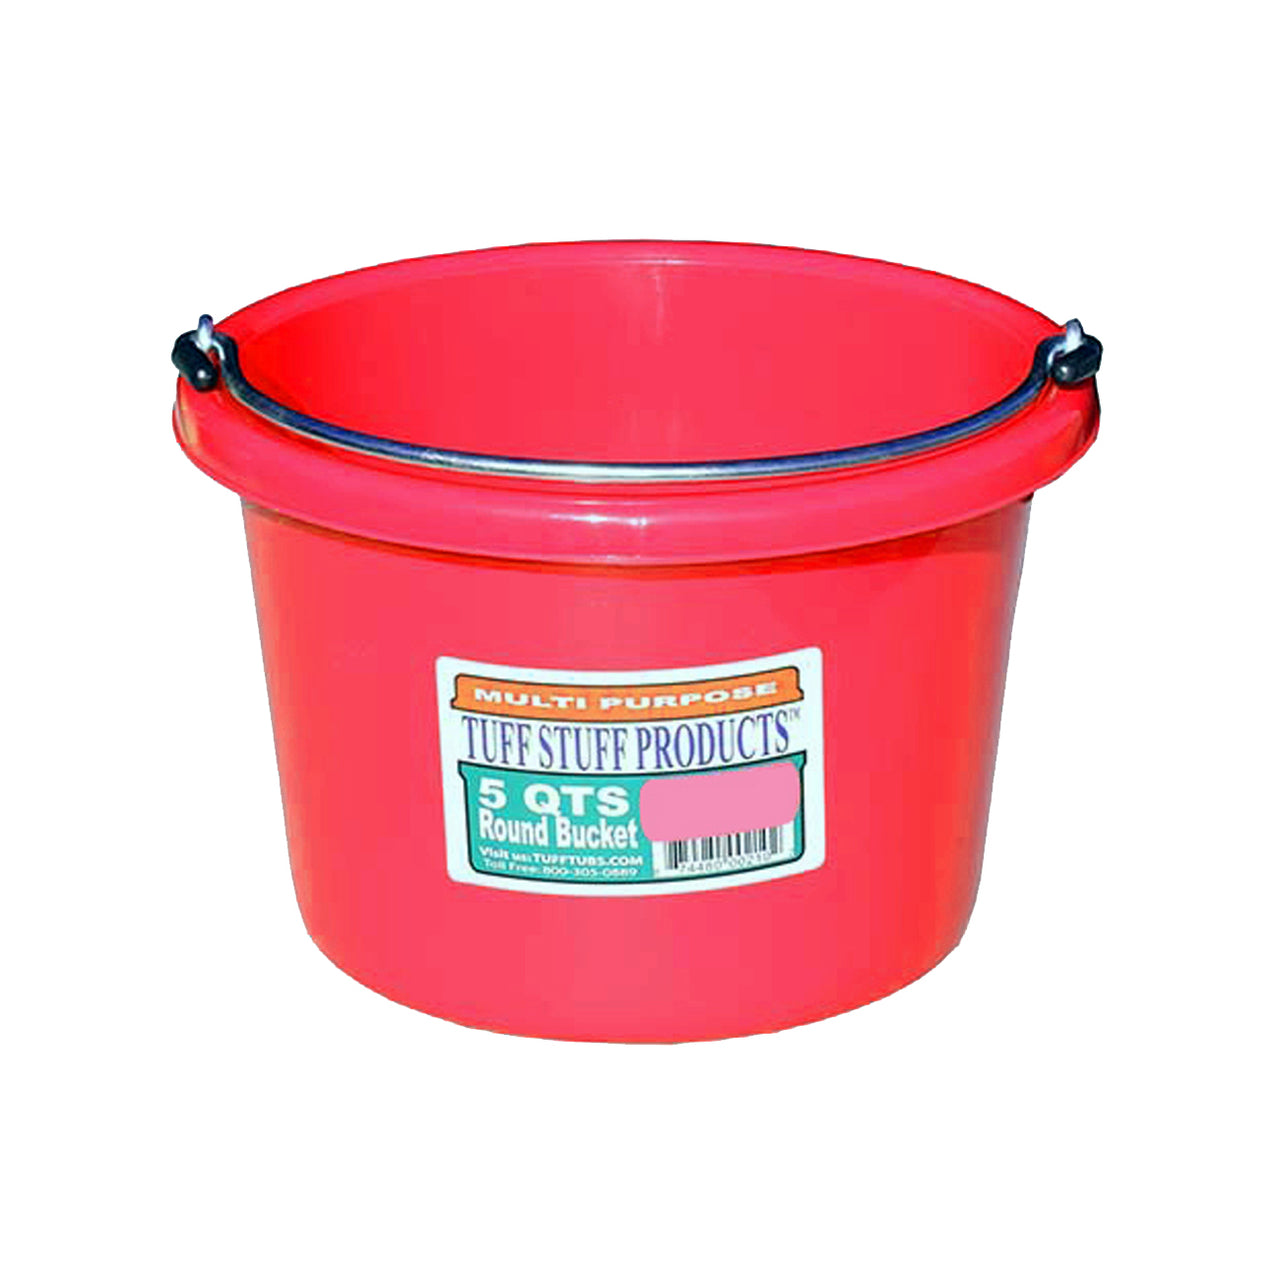 Tuff Stuff Small Round Bucket 5 Qts (Red) - Buckets Pails Feeders Scoops Tubs Bottles Tuff Stuff - Canada